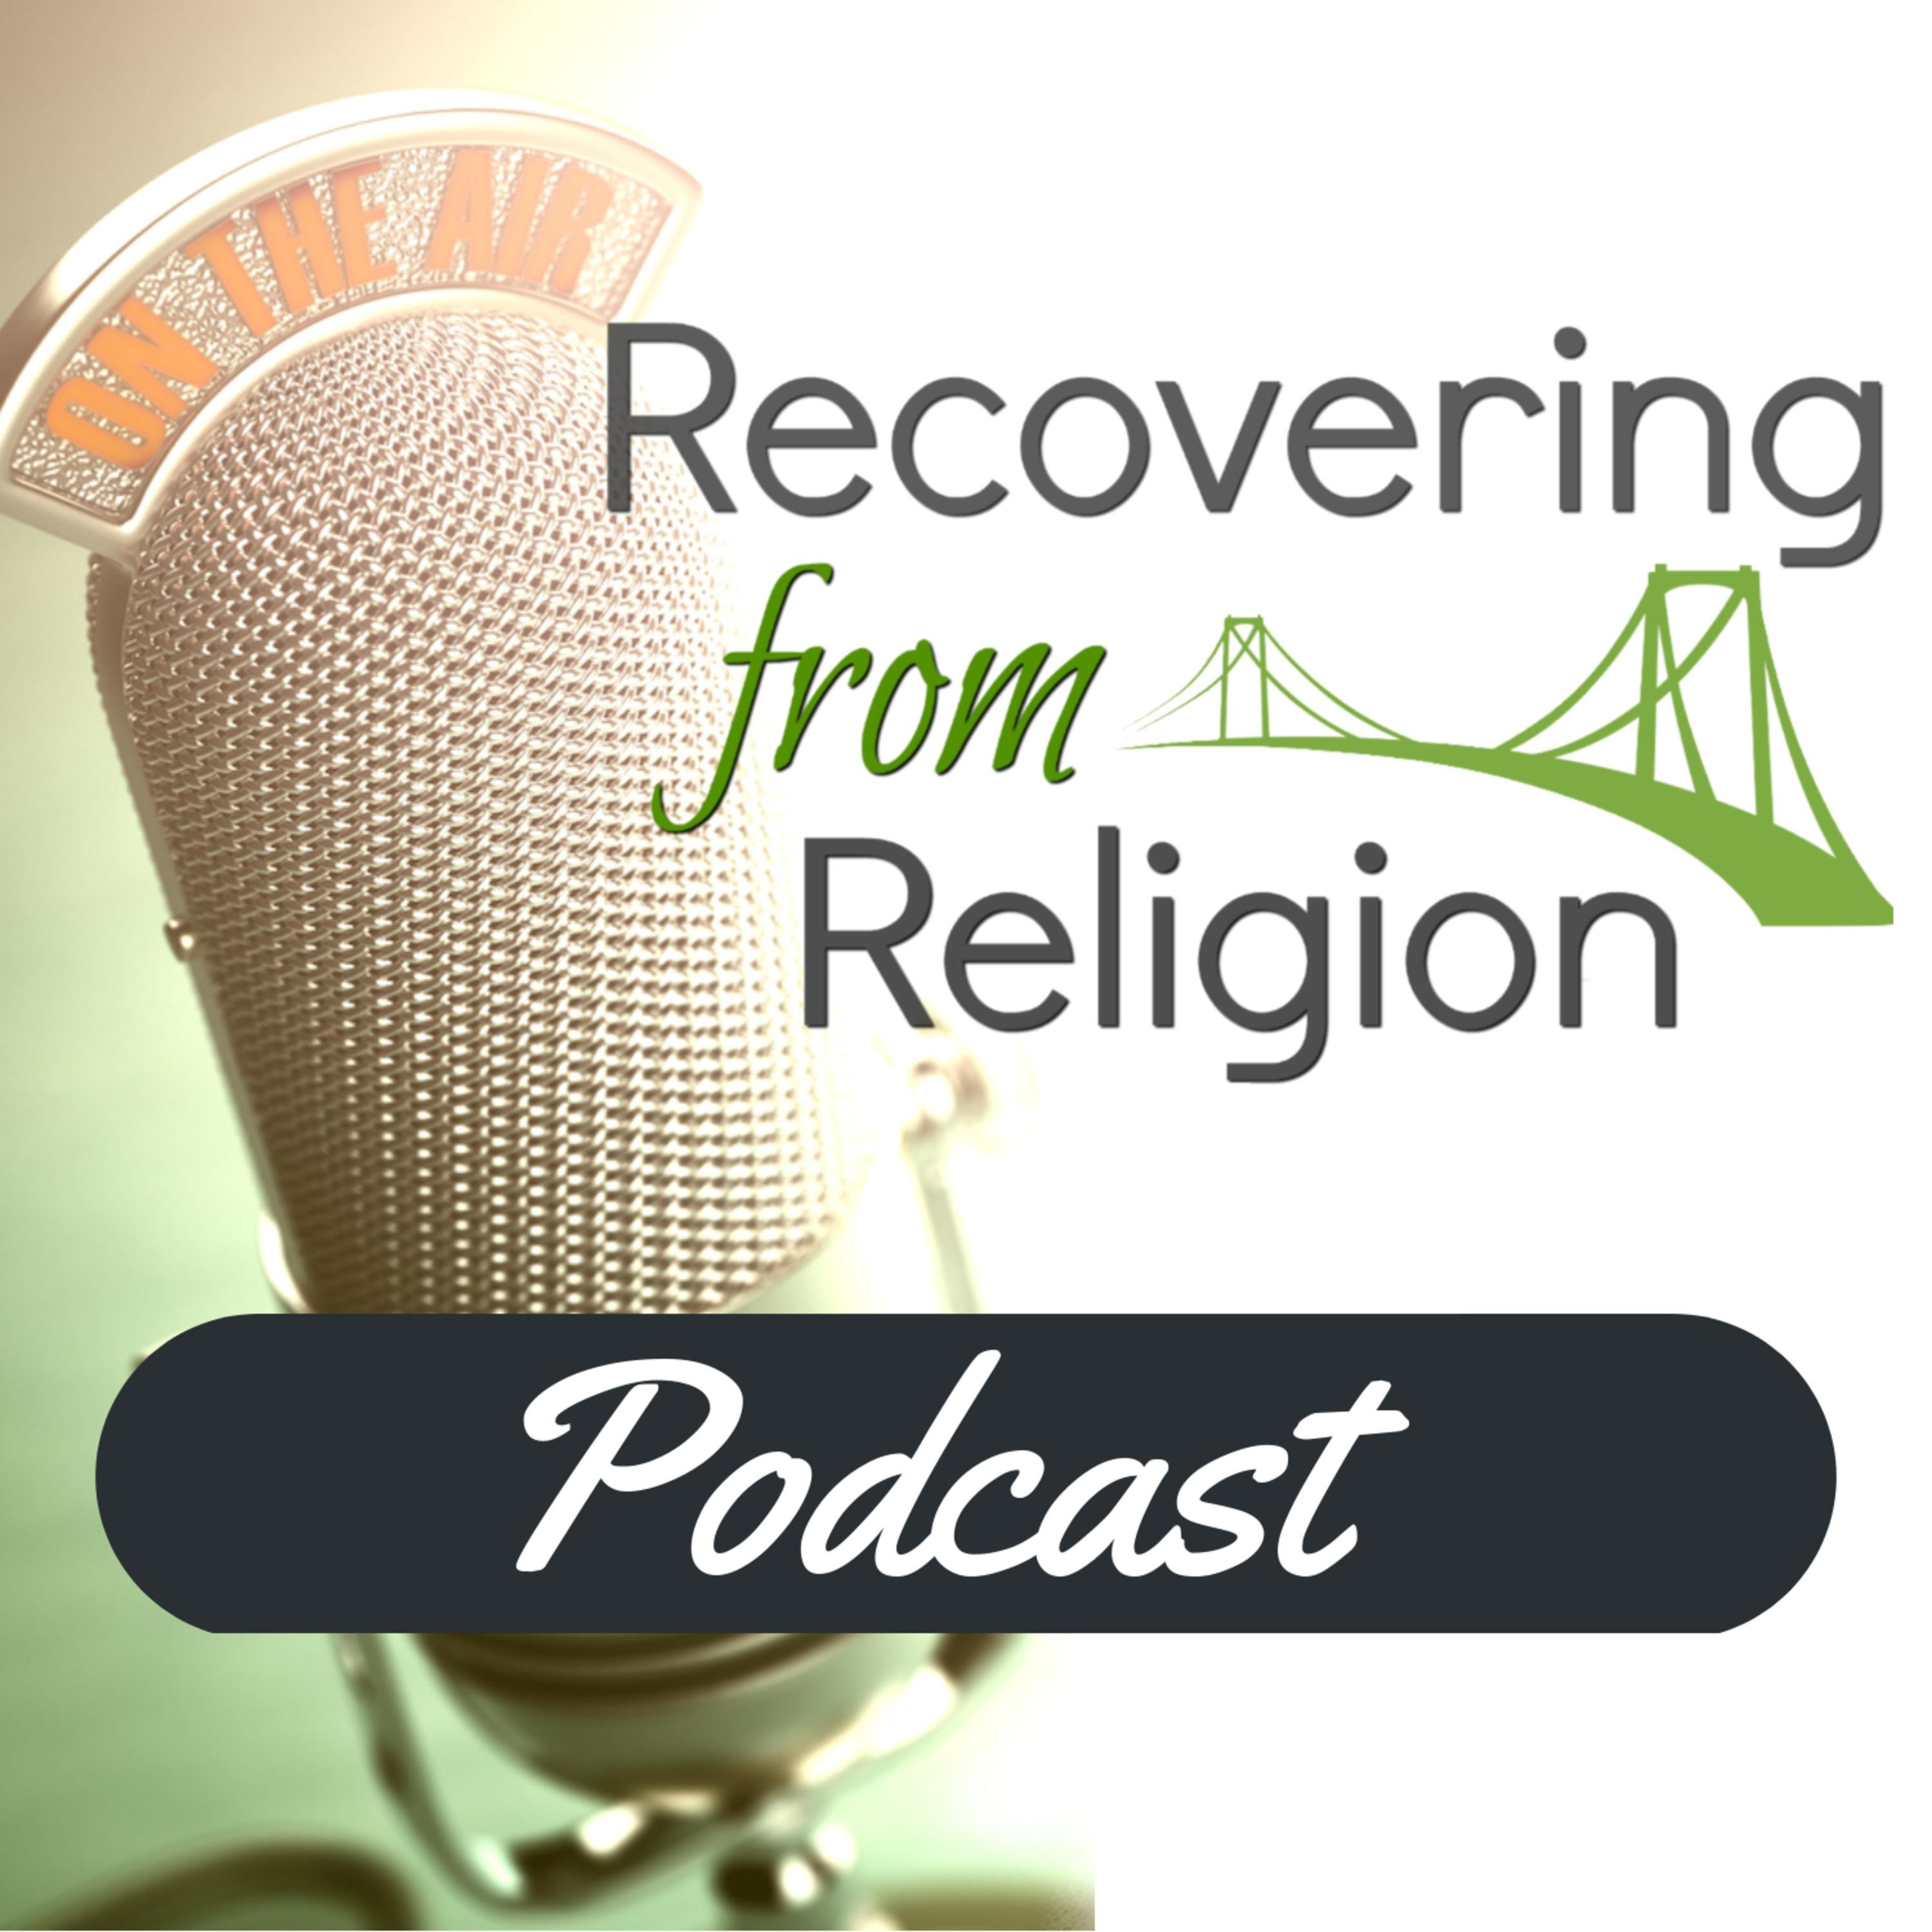 Recovering from Religion - Podcast – Podtail